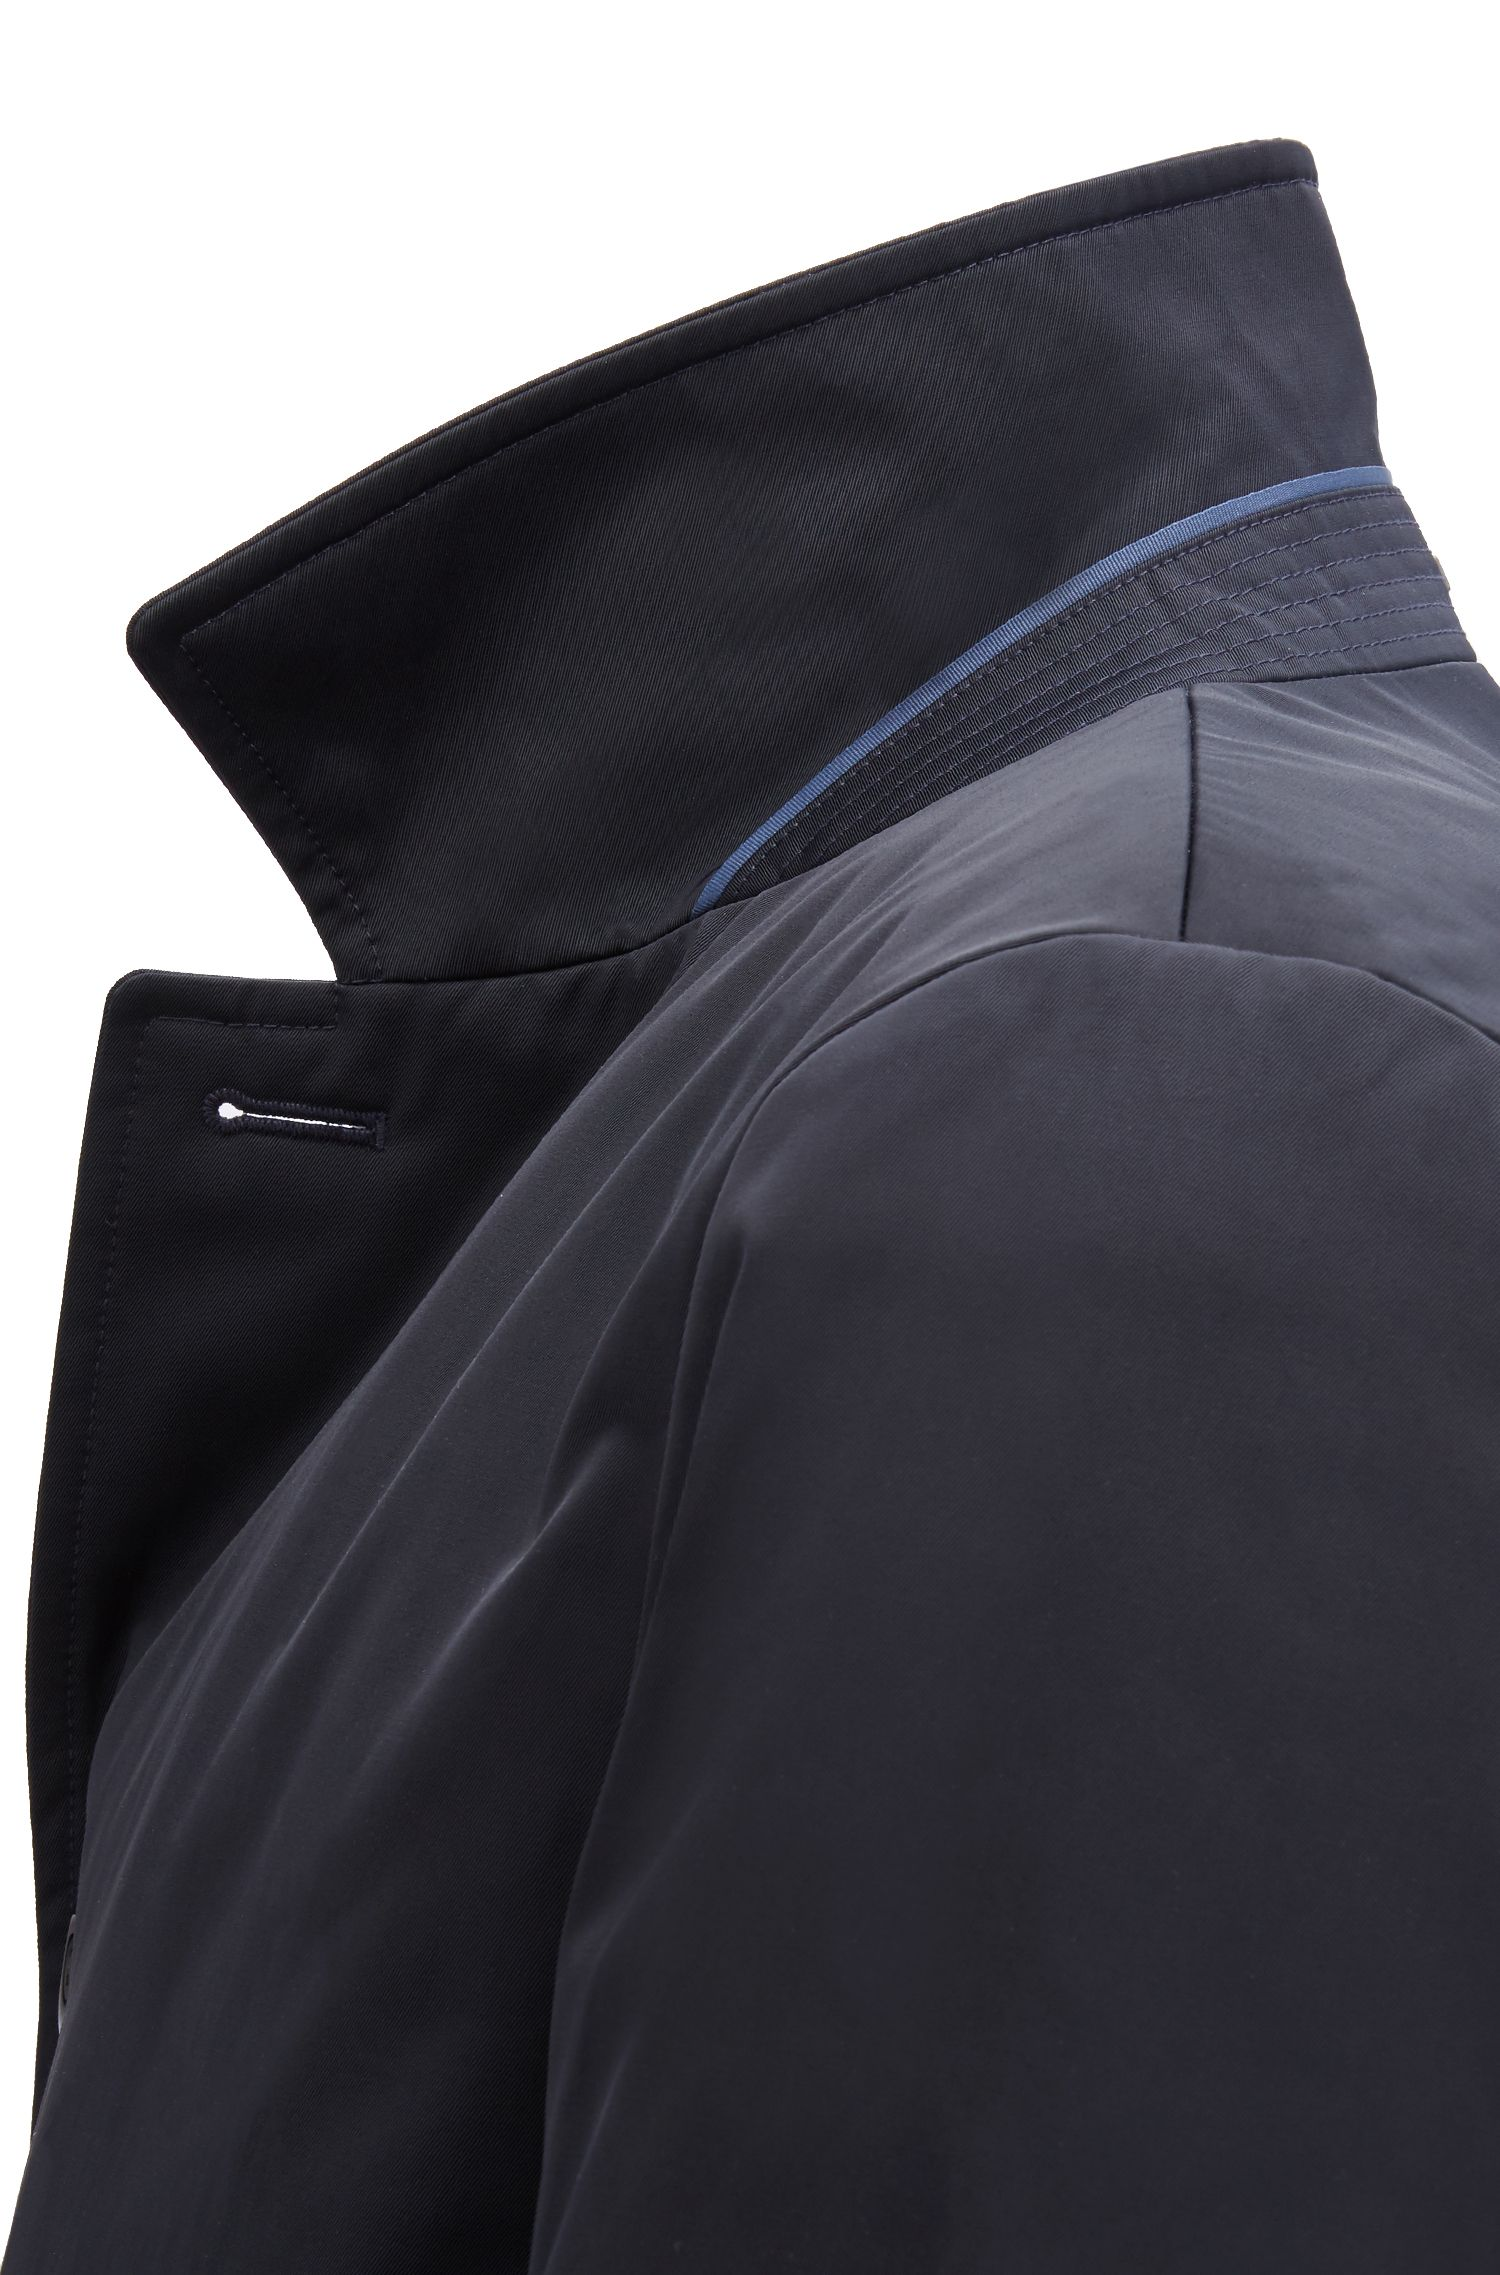 Cappotto corto idrorepellente in twill tecnico, Blue Scuro